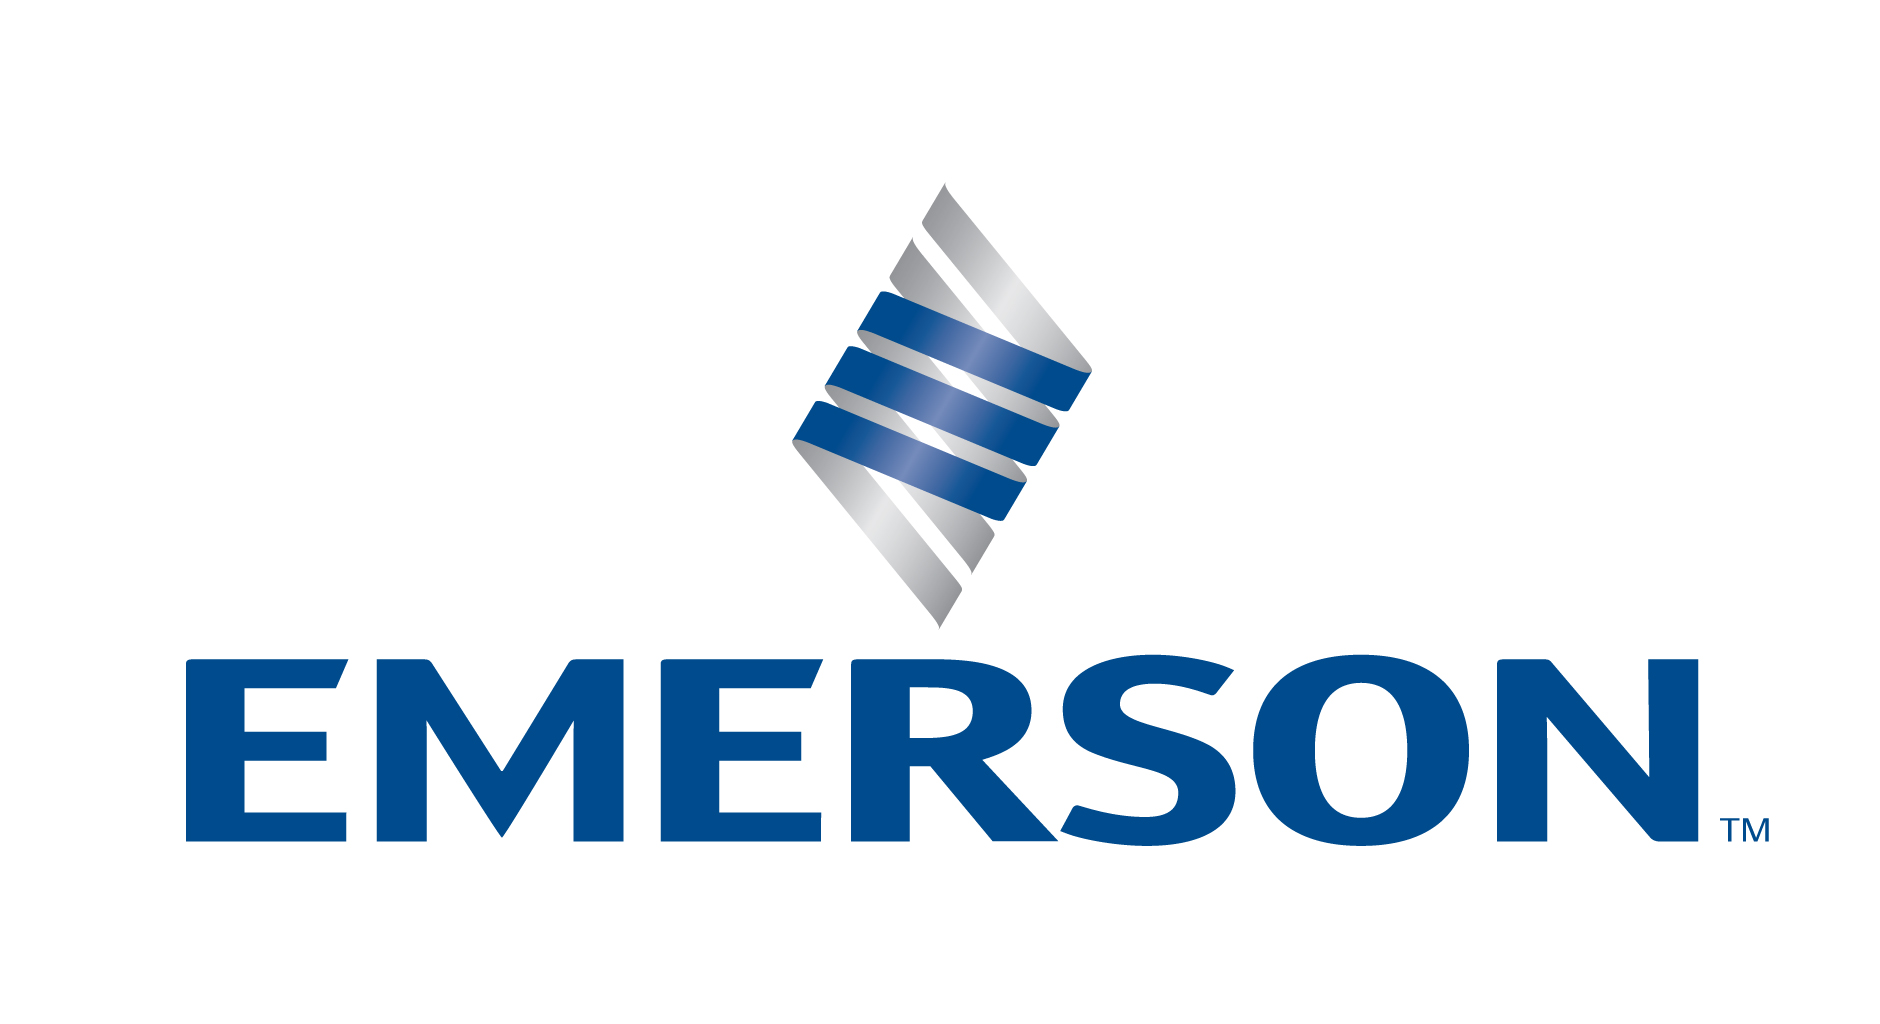 Emerson lauds wireless technologies as foundation of IIoT adoption